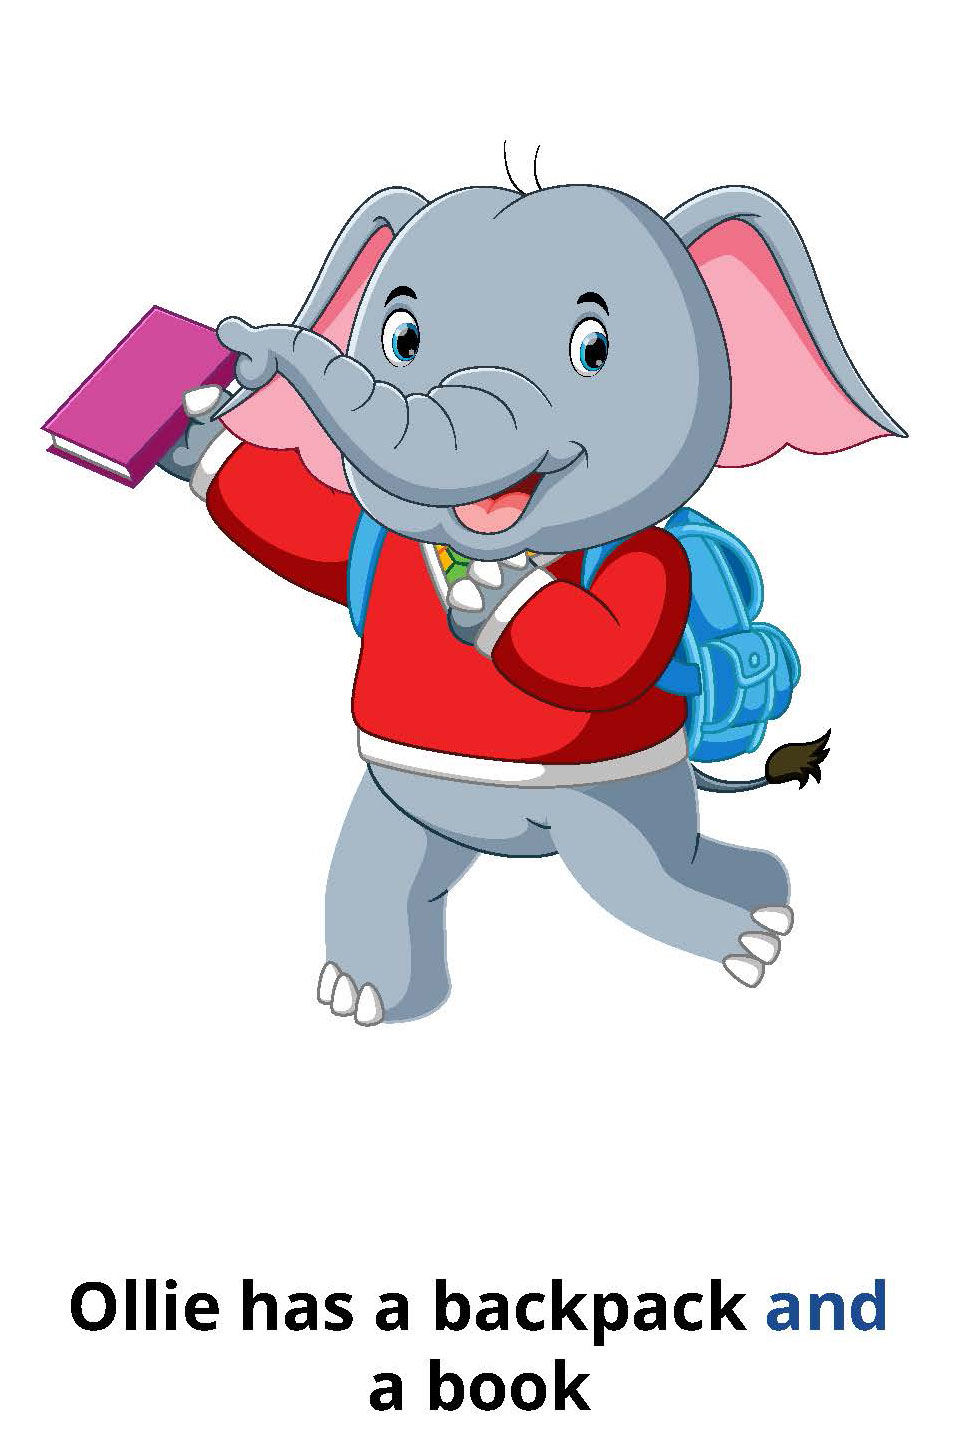 Ollie has a backpack and a book